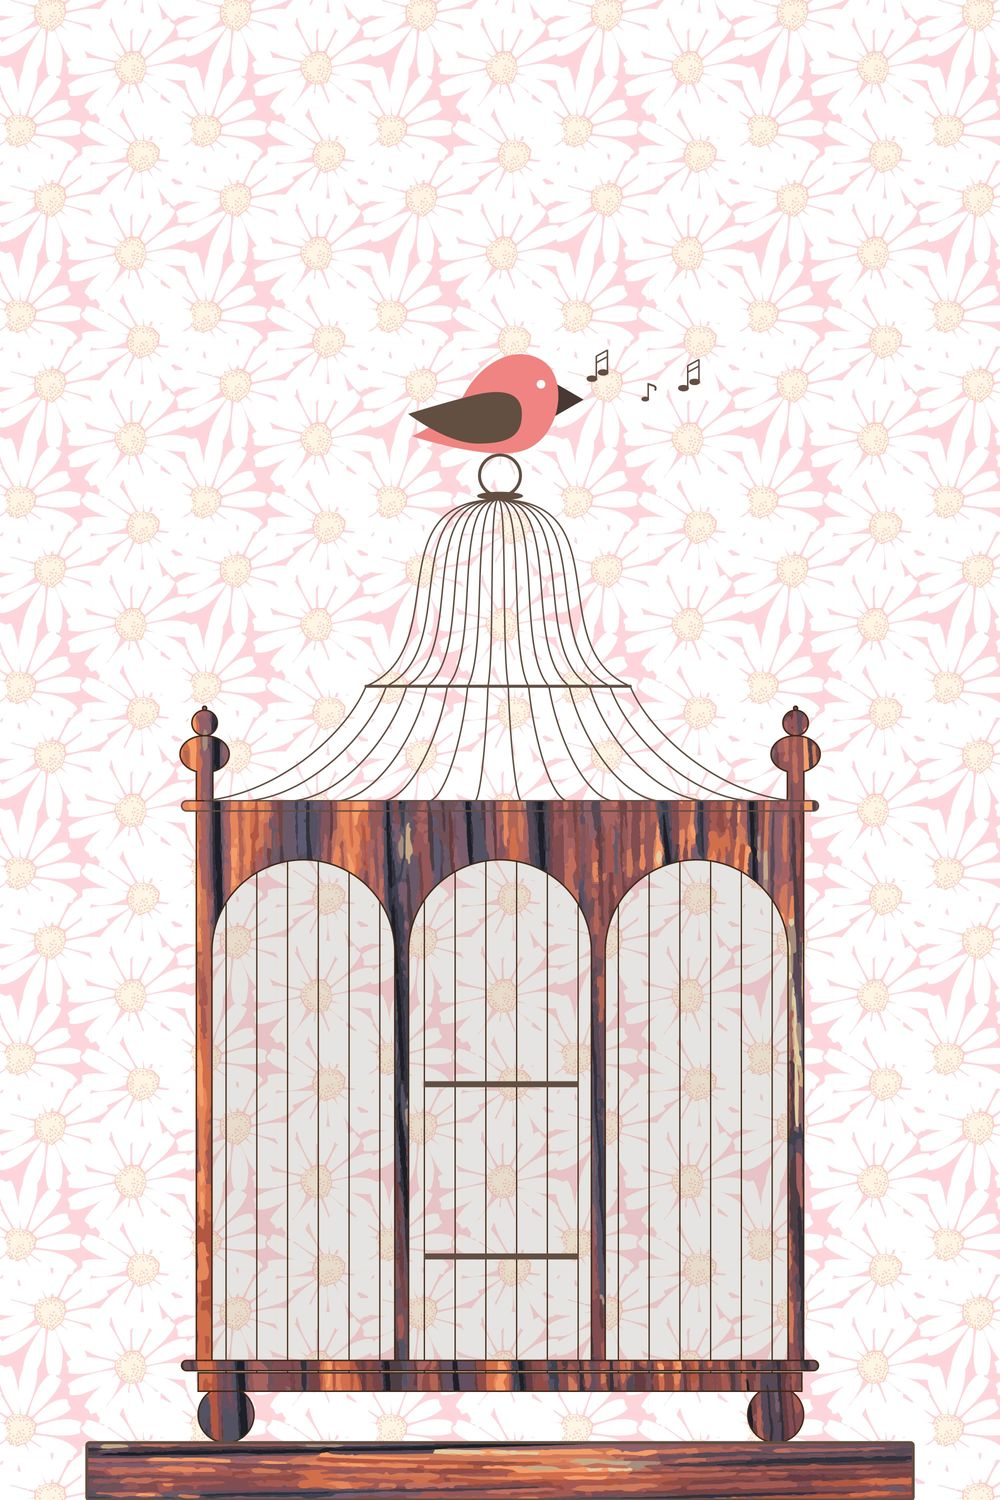 A wooden vintage birdcage with a singing birdie - image 1 - student project